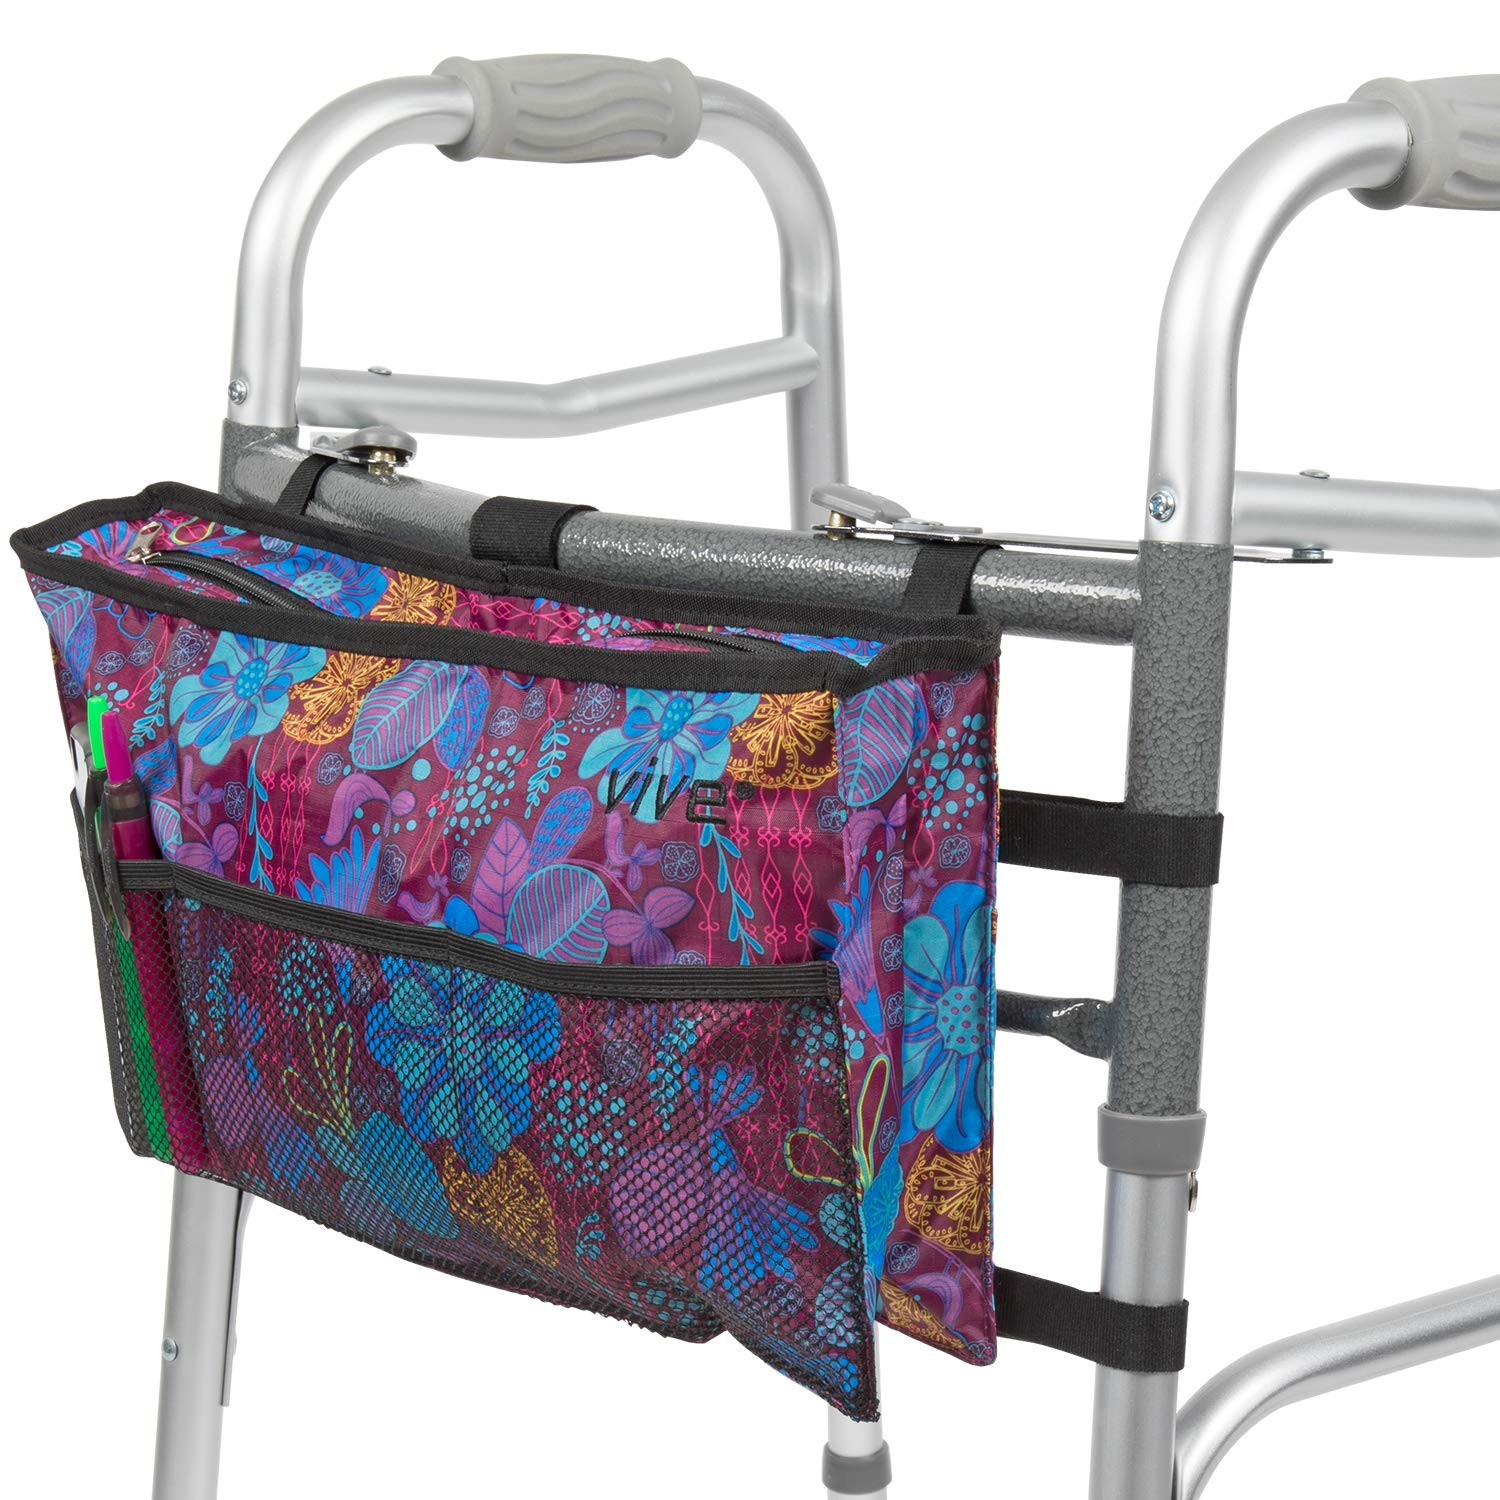 Vive Walker Bag - Water Resistant Accessory Basket Provides Hands Free Storage for Folding Walkers - Attachment Fits Wide and Narrow Styles - Tote Caddy Pouch for Elderly, Seniors, Handicap, Disabled by Vive